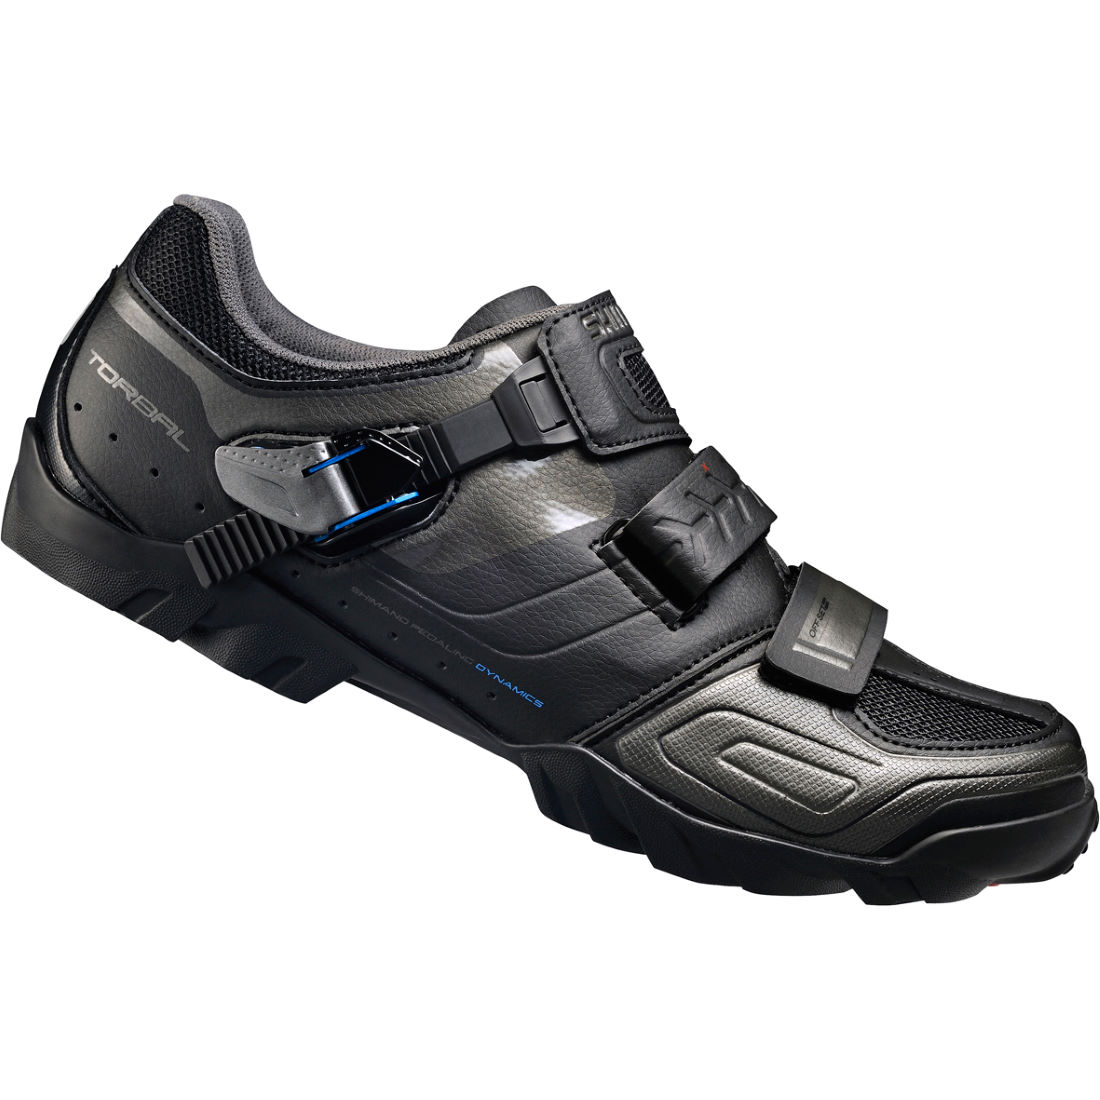 Wiggle Cycling Shoes